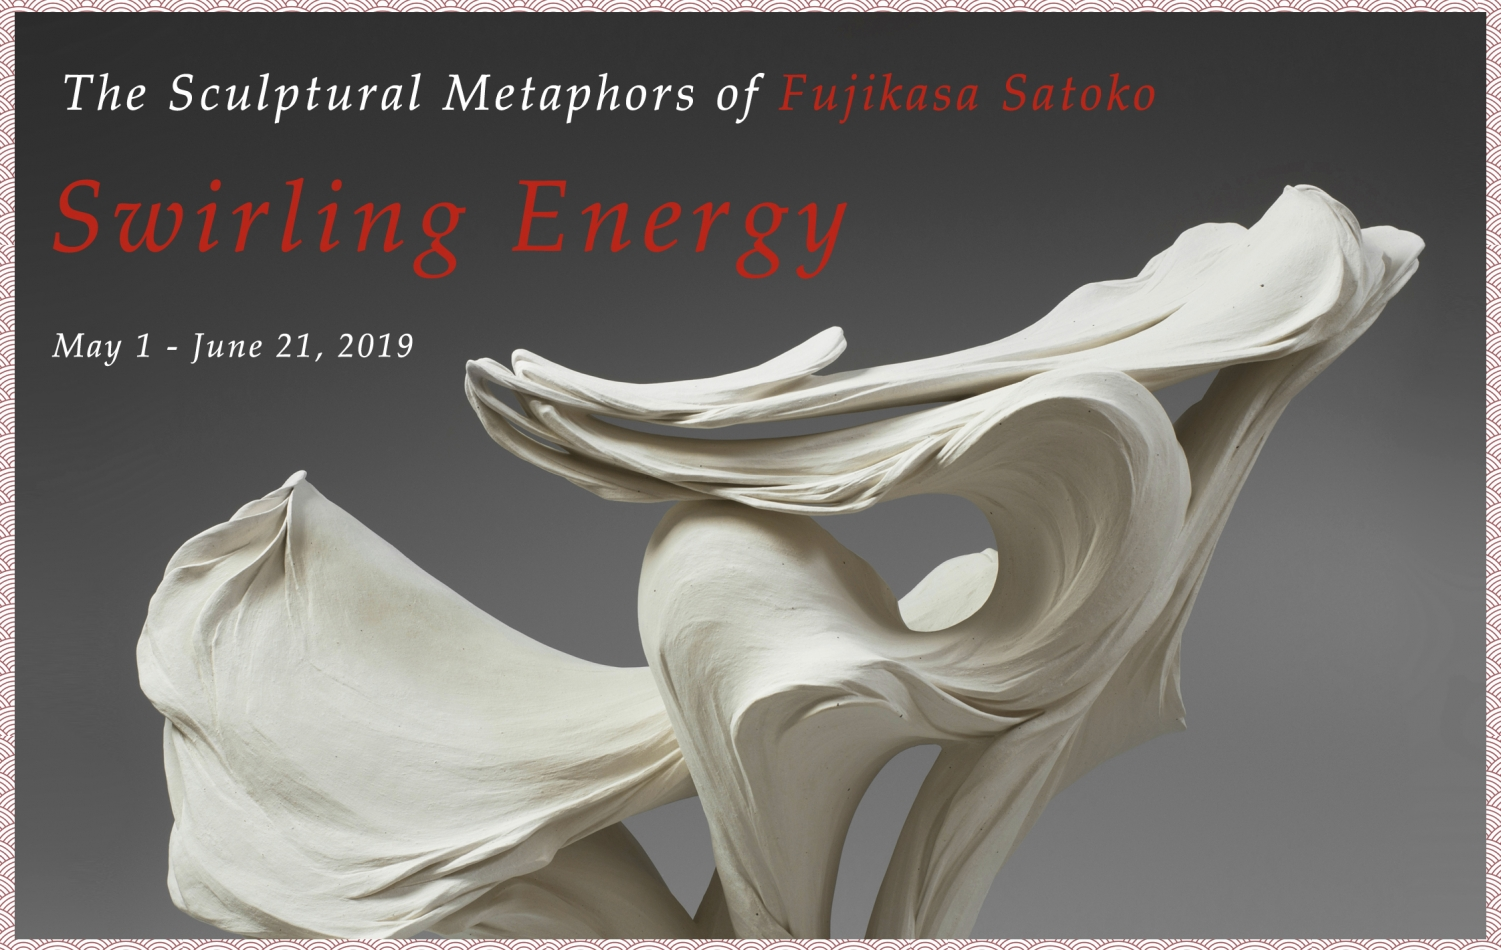 Swirling Energy: The Sculptural Metaphors of Fujikasa Satoko